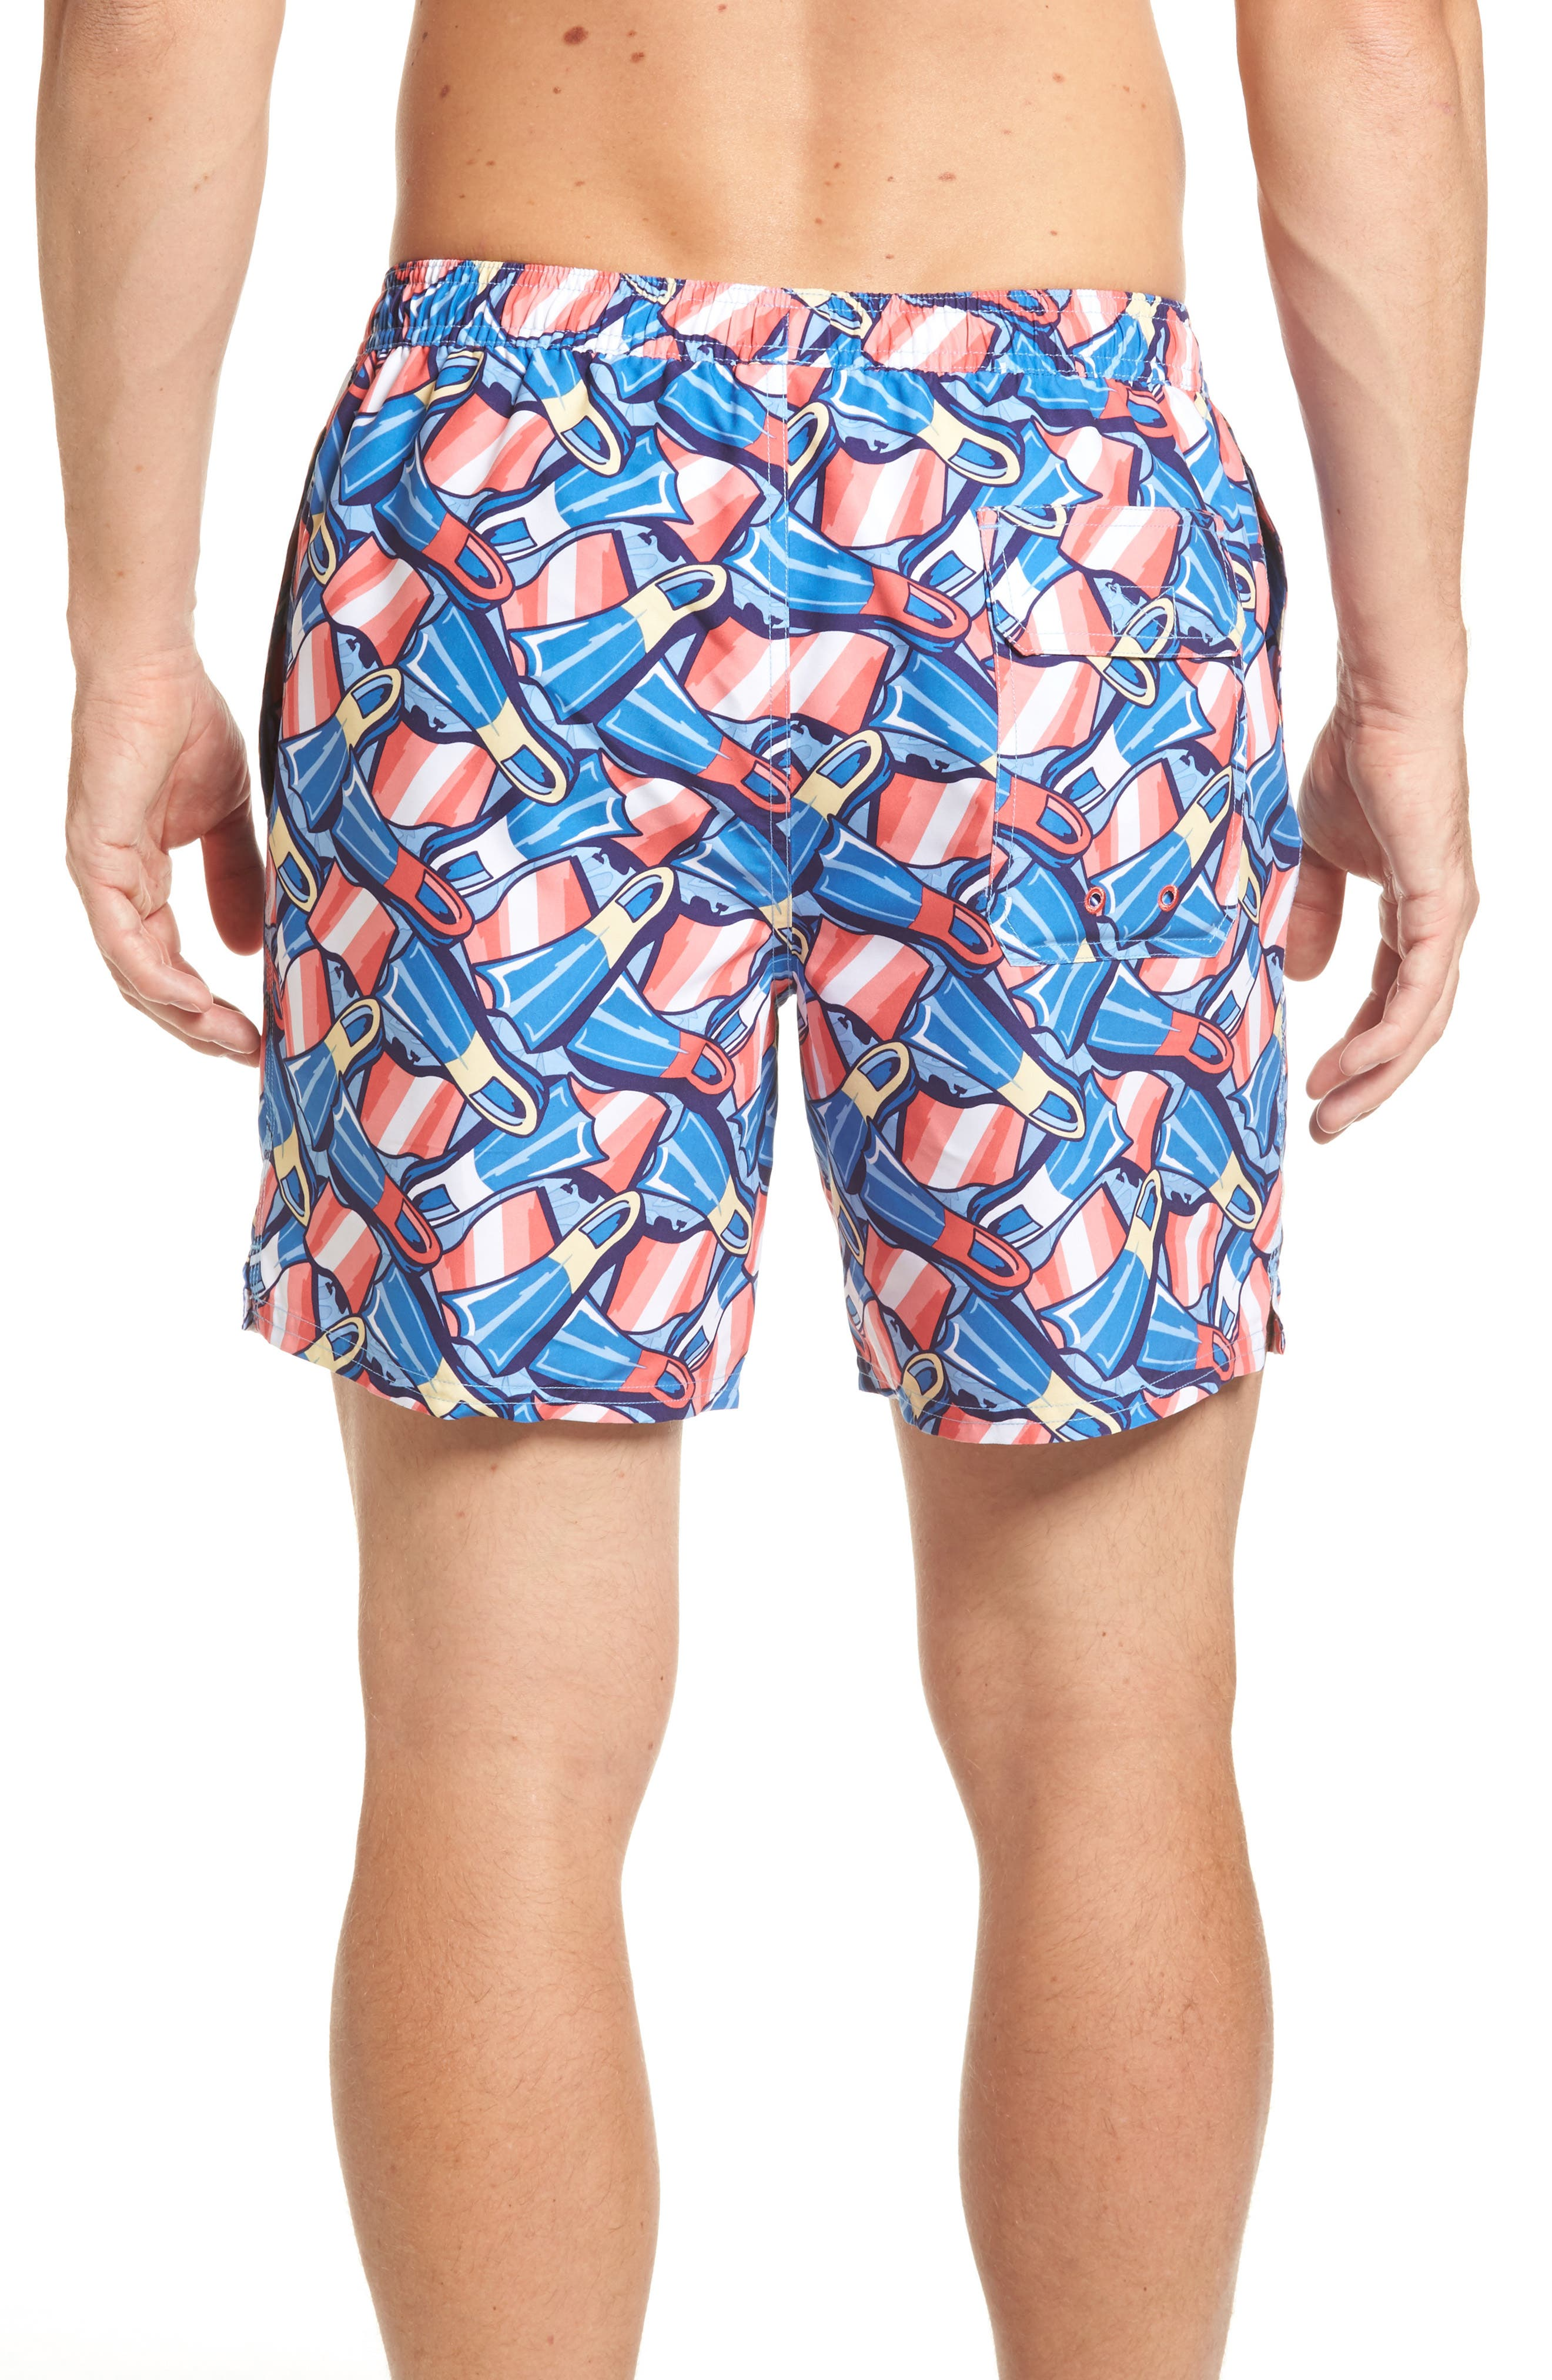 Flippers Chappy Swim Trunks,                             Alternate thumbnail 2, color,                             437